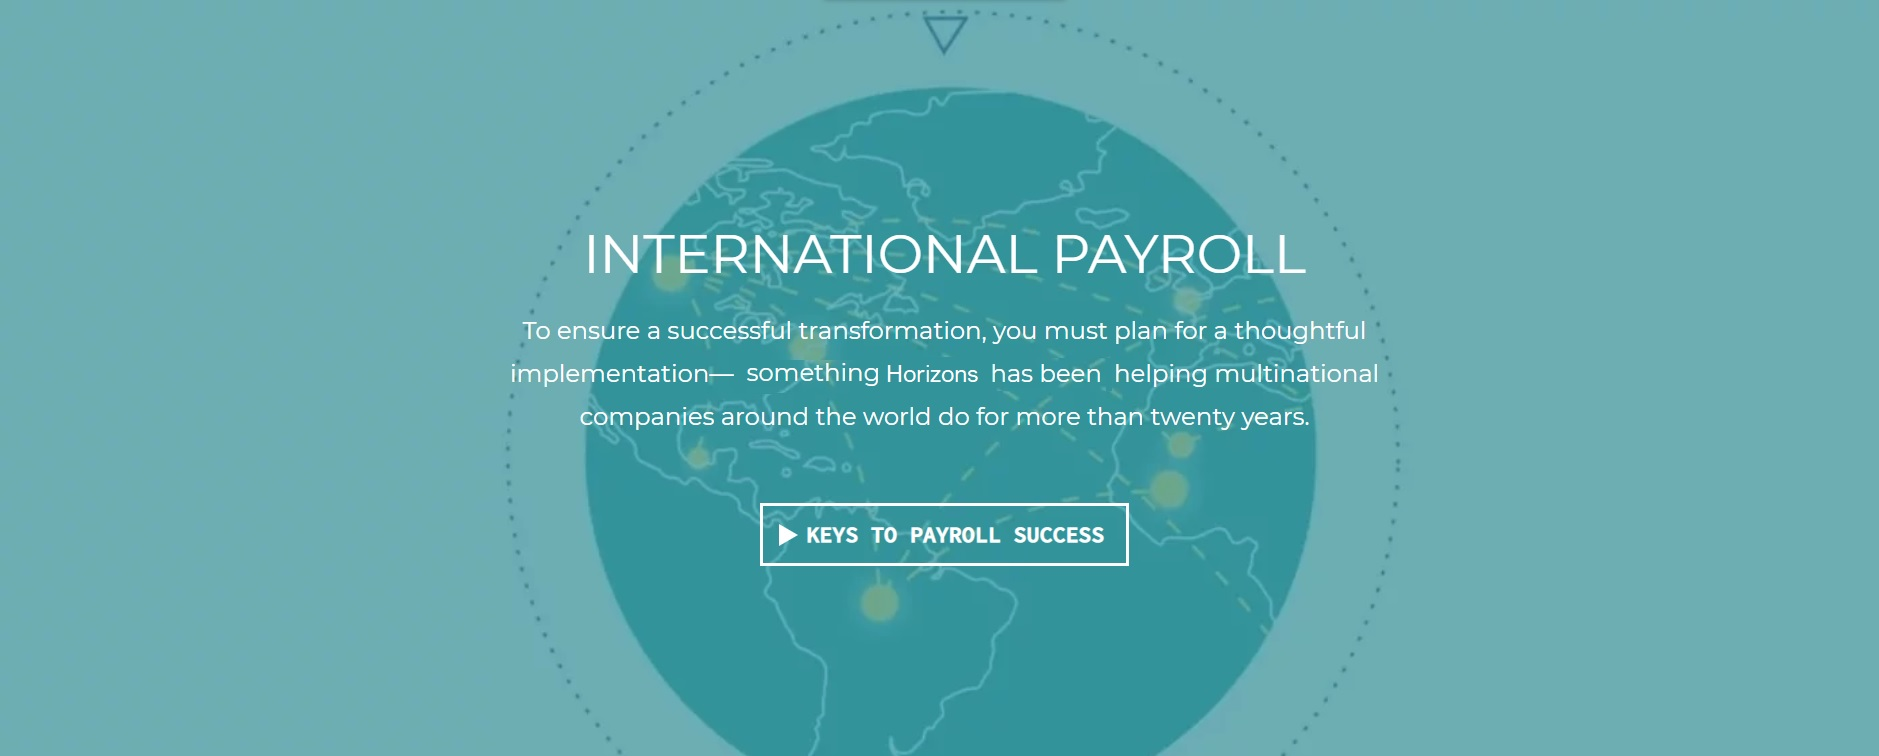 International Payroll - Horizons Visions